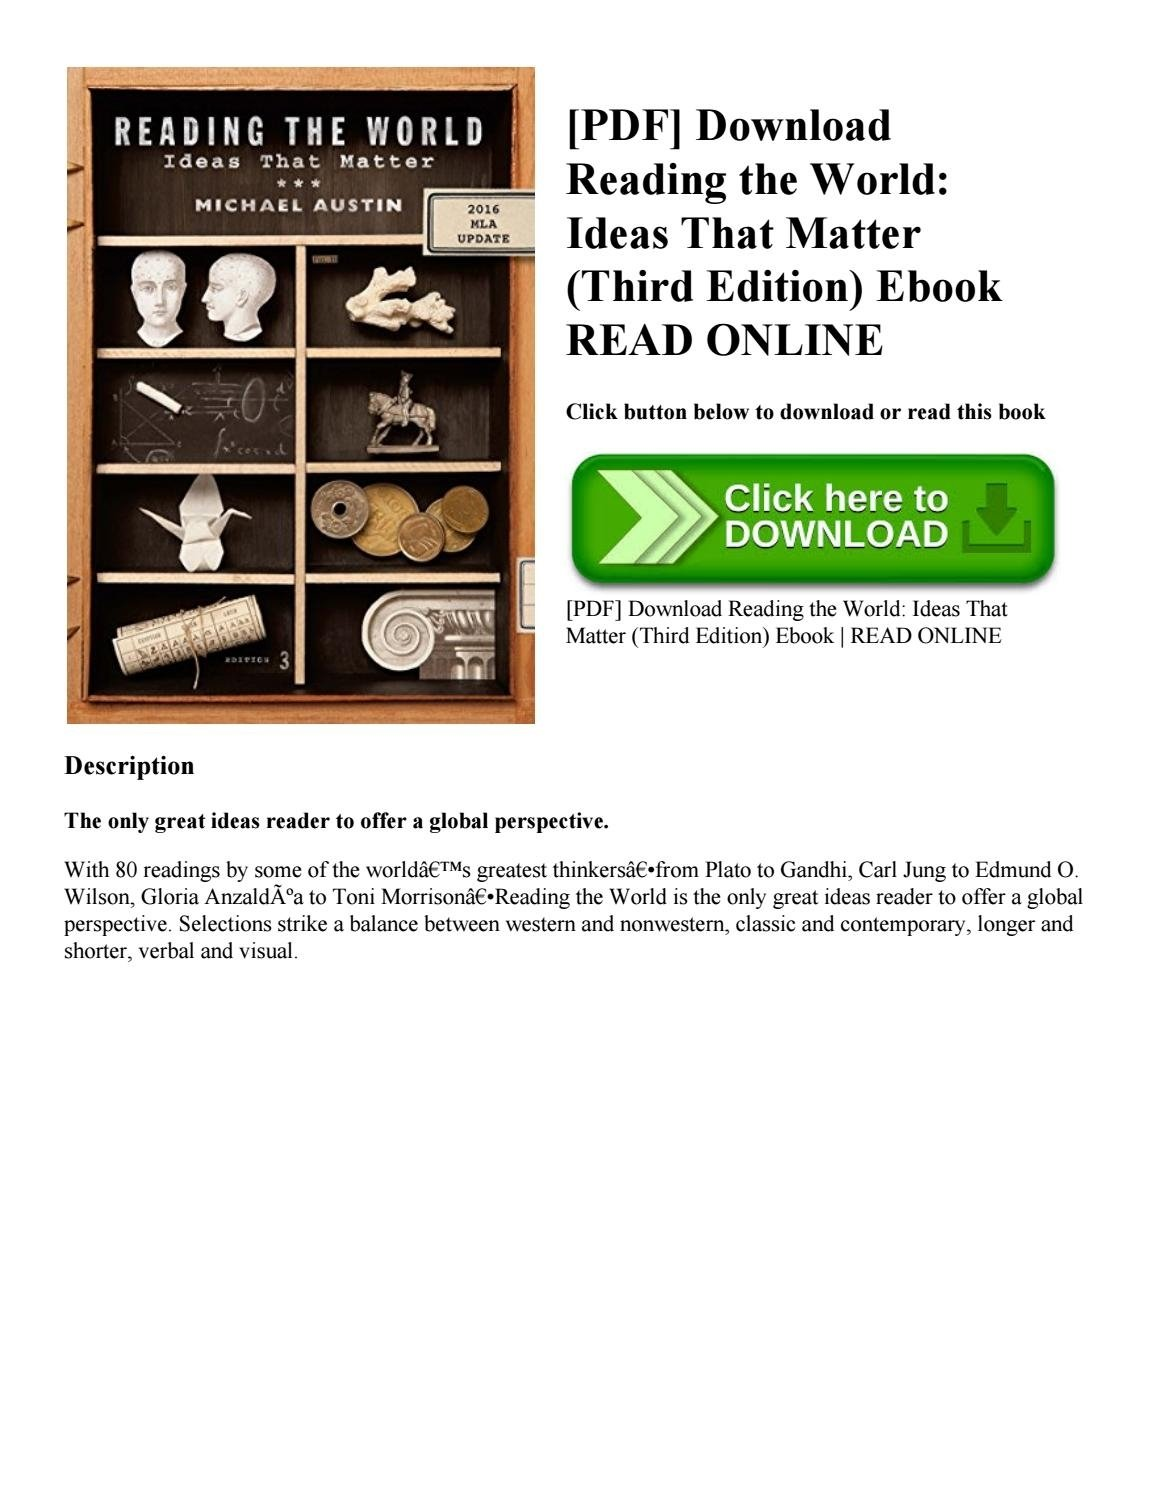 pdf] download reading the world ideas that matter (third edition